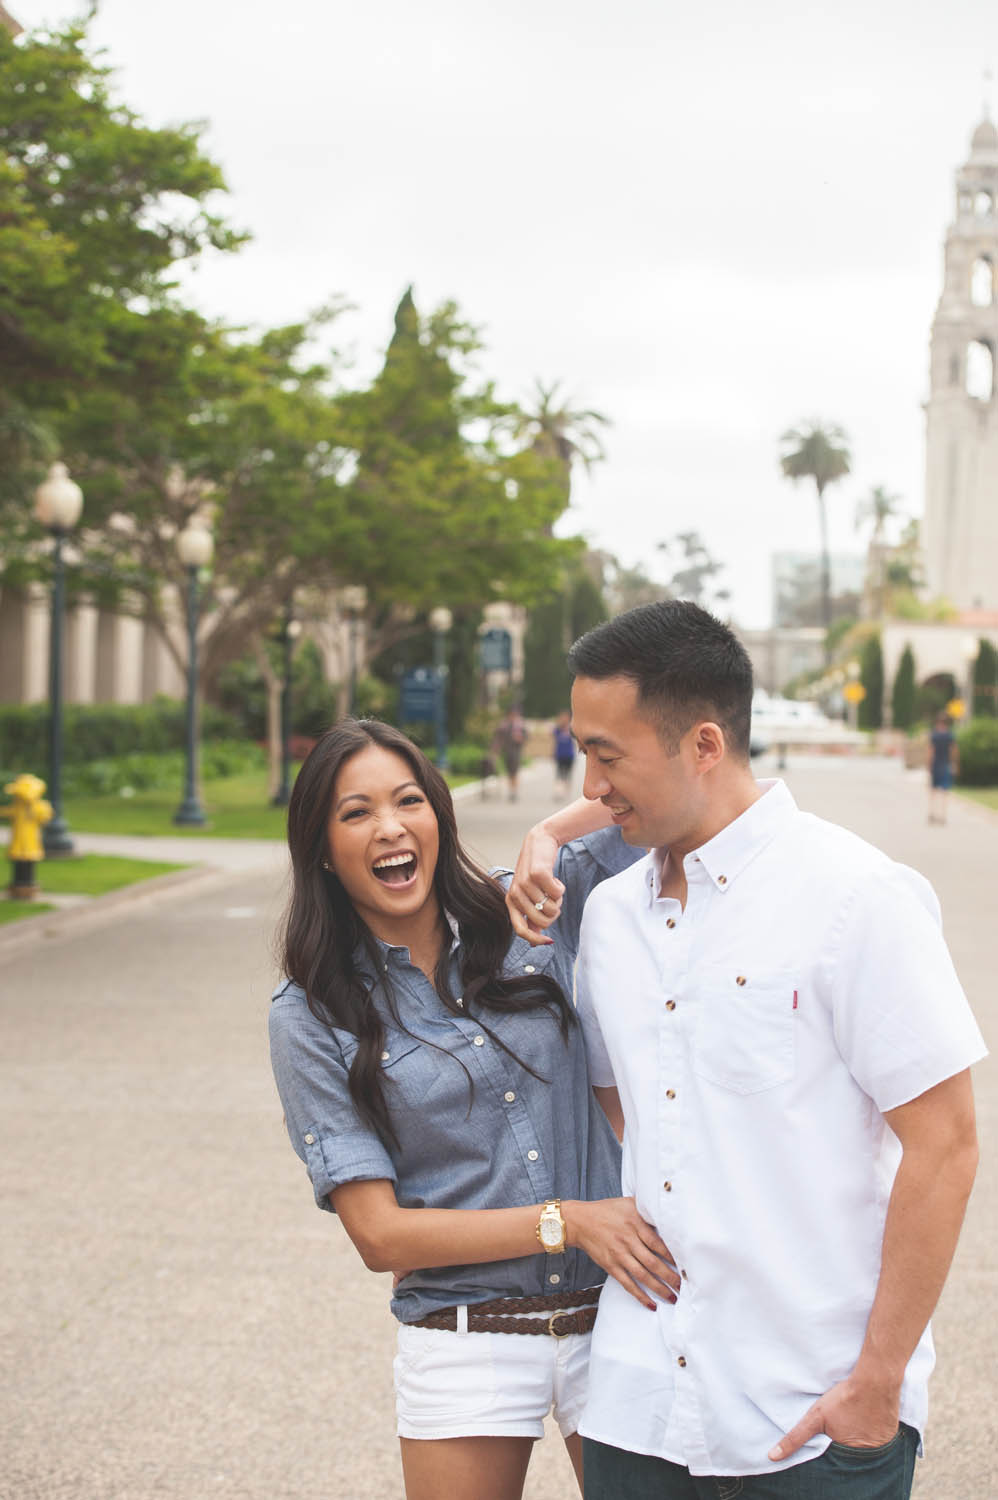 balboa-park-engagement-photos-ian-andrew-photography-041.jpg